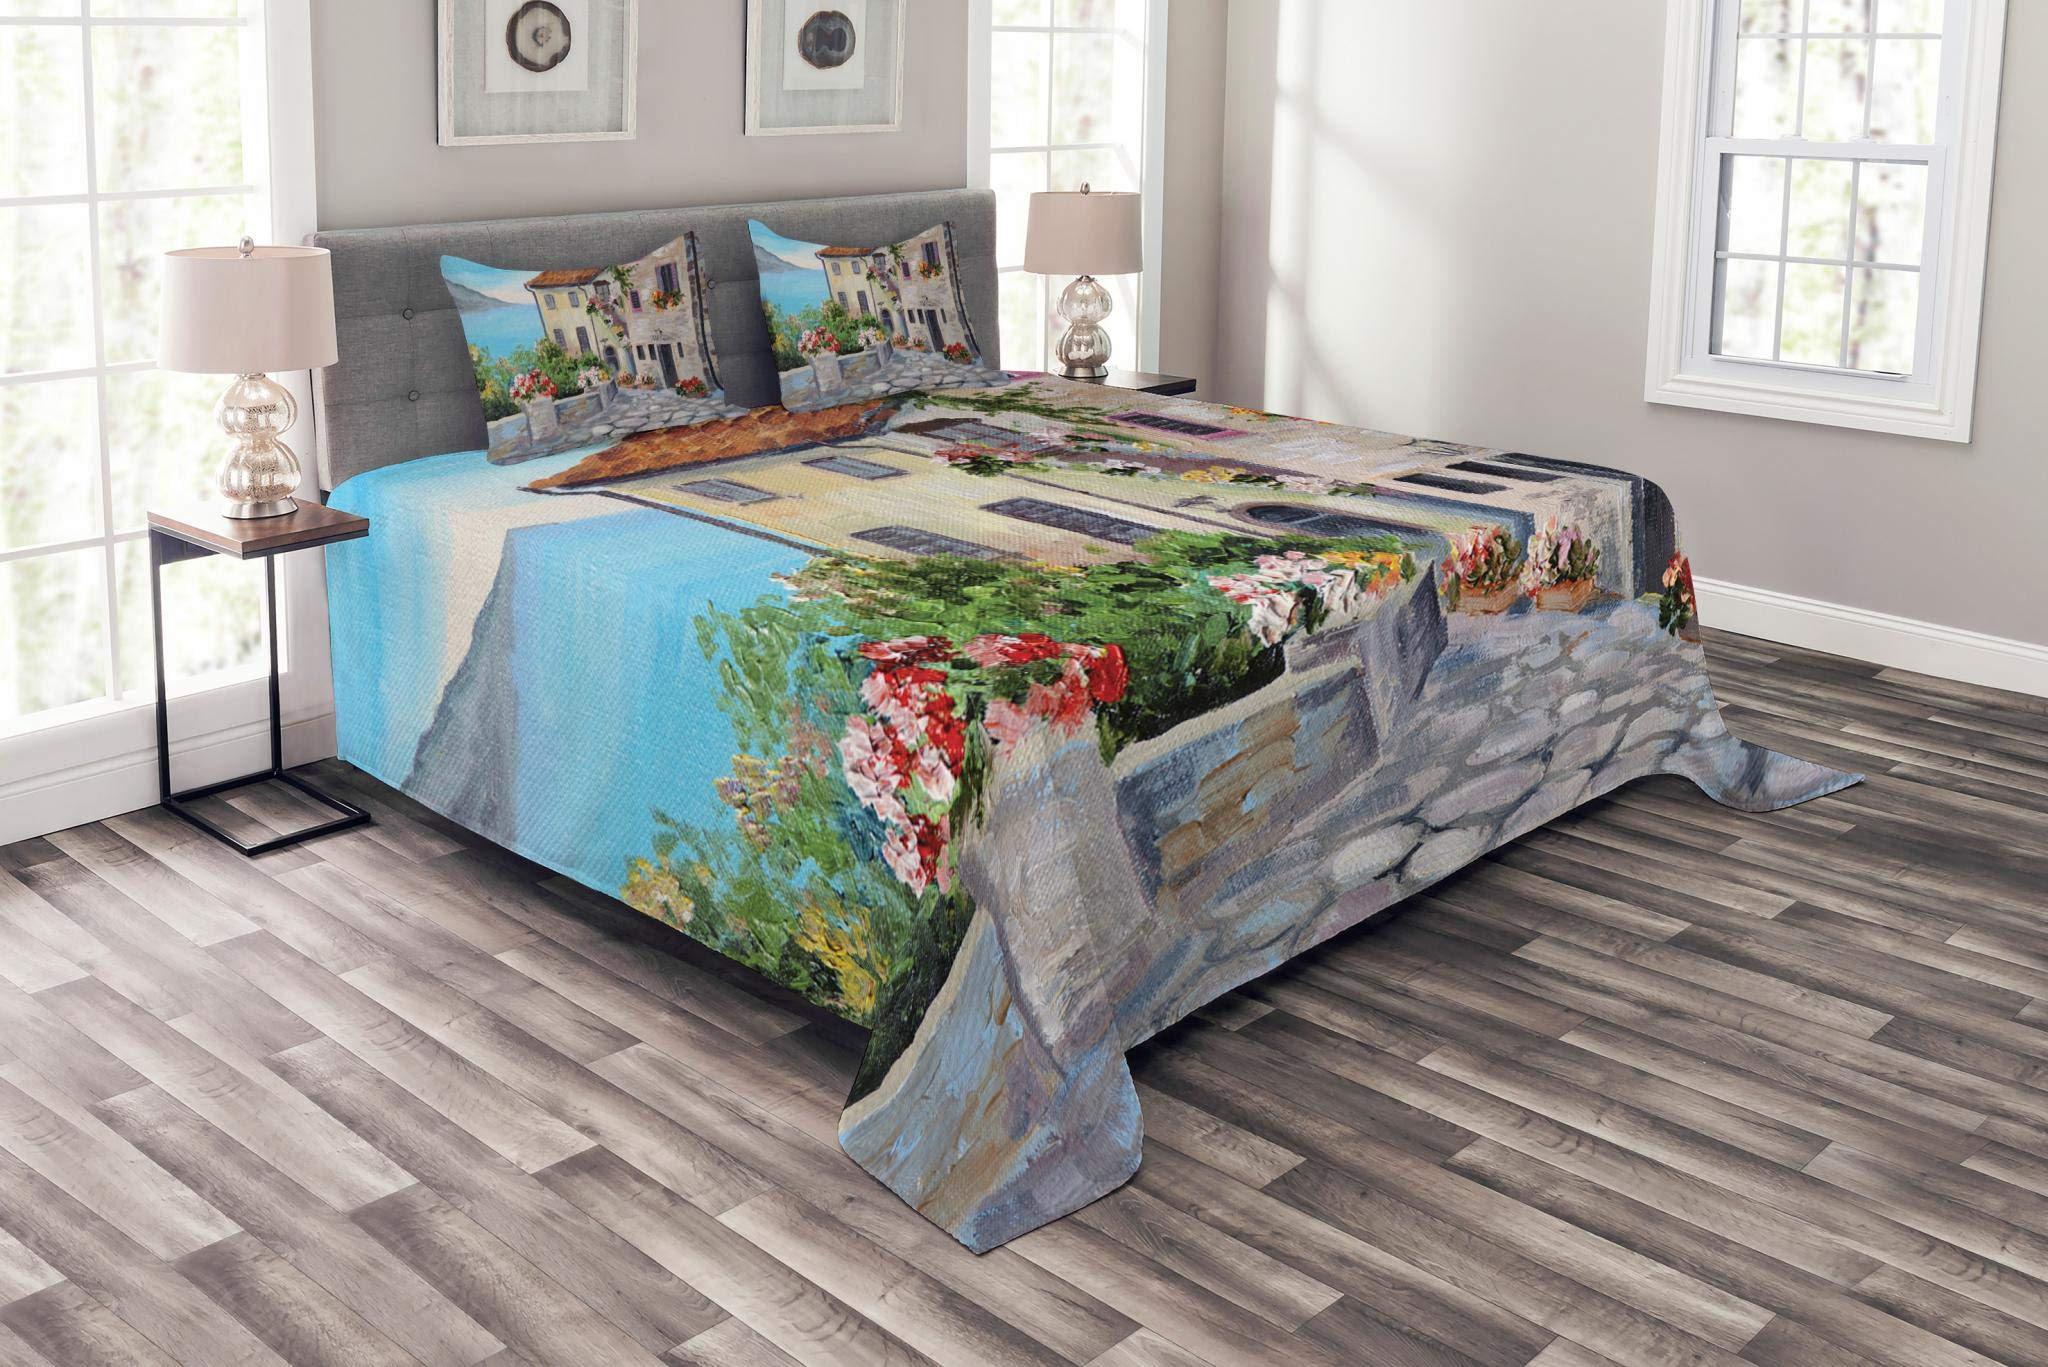 Lunarable Rustic Bedspread Set Queen Size, Old Houses in a Small Town Sea and Flower Pots at Windows Oil Painting Style, Decorative Quilted 3 Piece Coverlet Set with 2 Pillow Shams, Beige Pale Blue